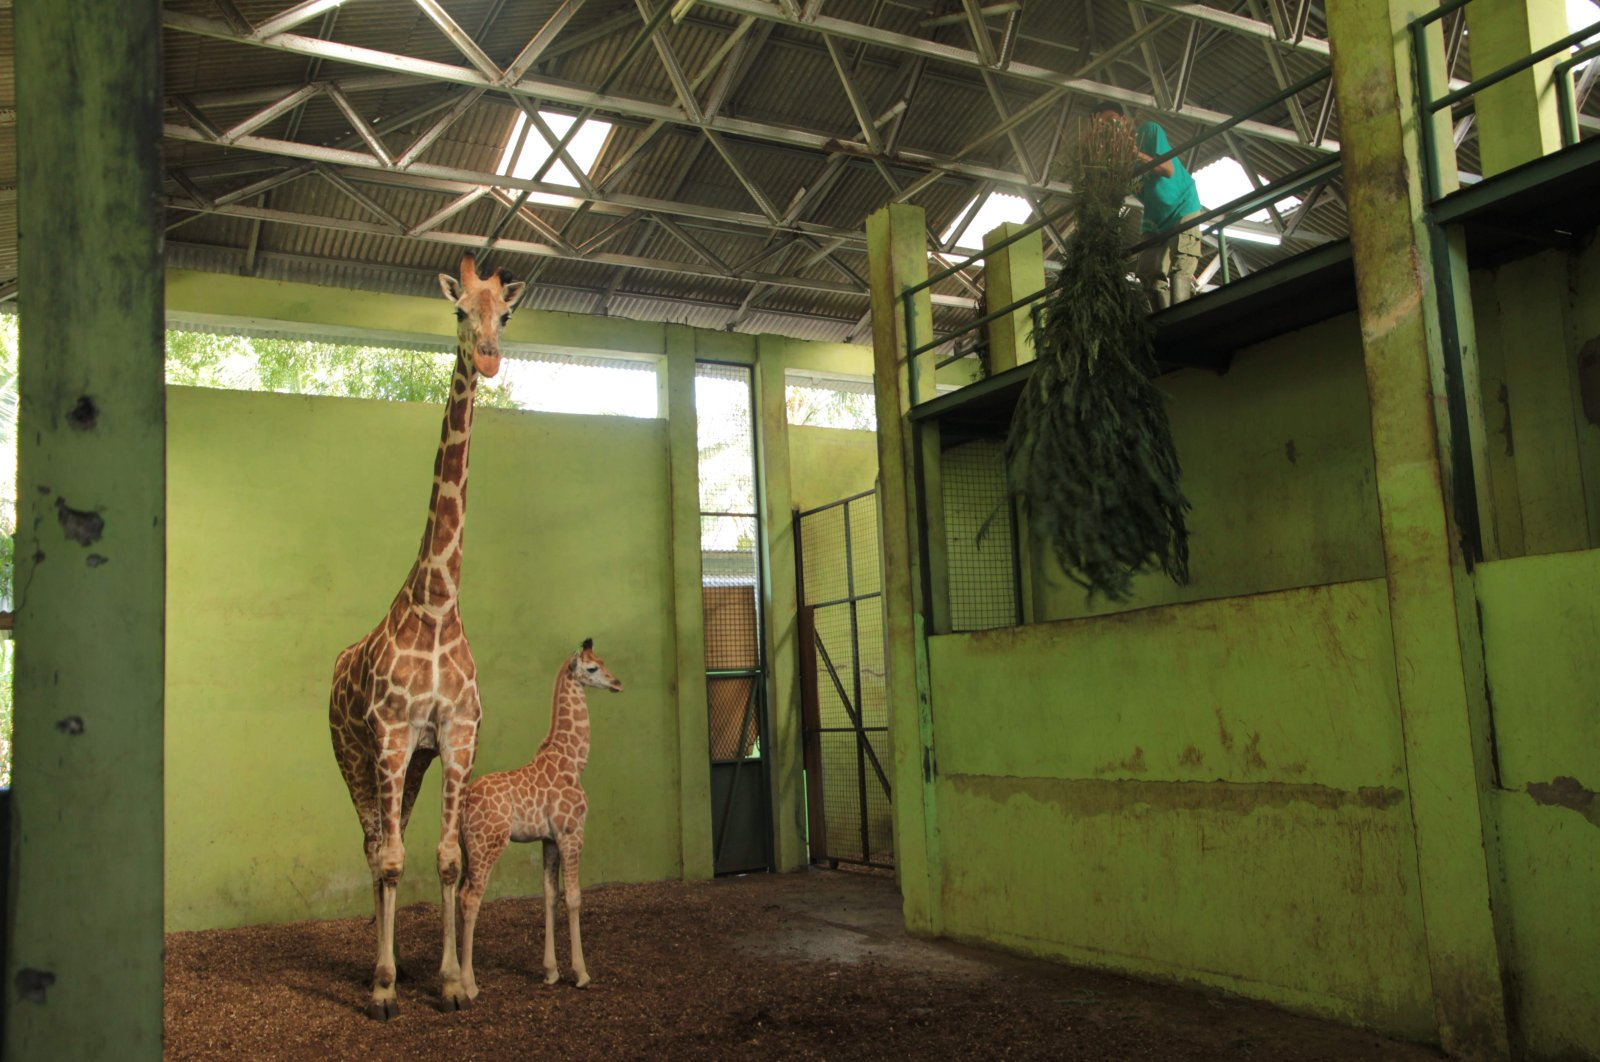 """A baby giraffe, who was born on April 9 and named """"Corona,"""" standing with its mother at the Bali Safari Park in Gianyar on the Indonesian resort island of Bali, May 27, 2020. (AFP Photo/Bali Safari Park)"""